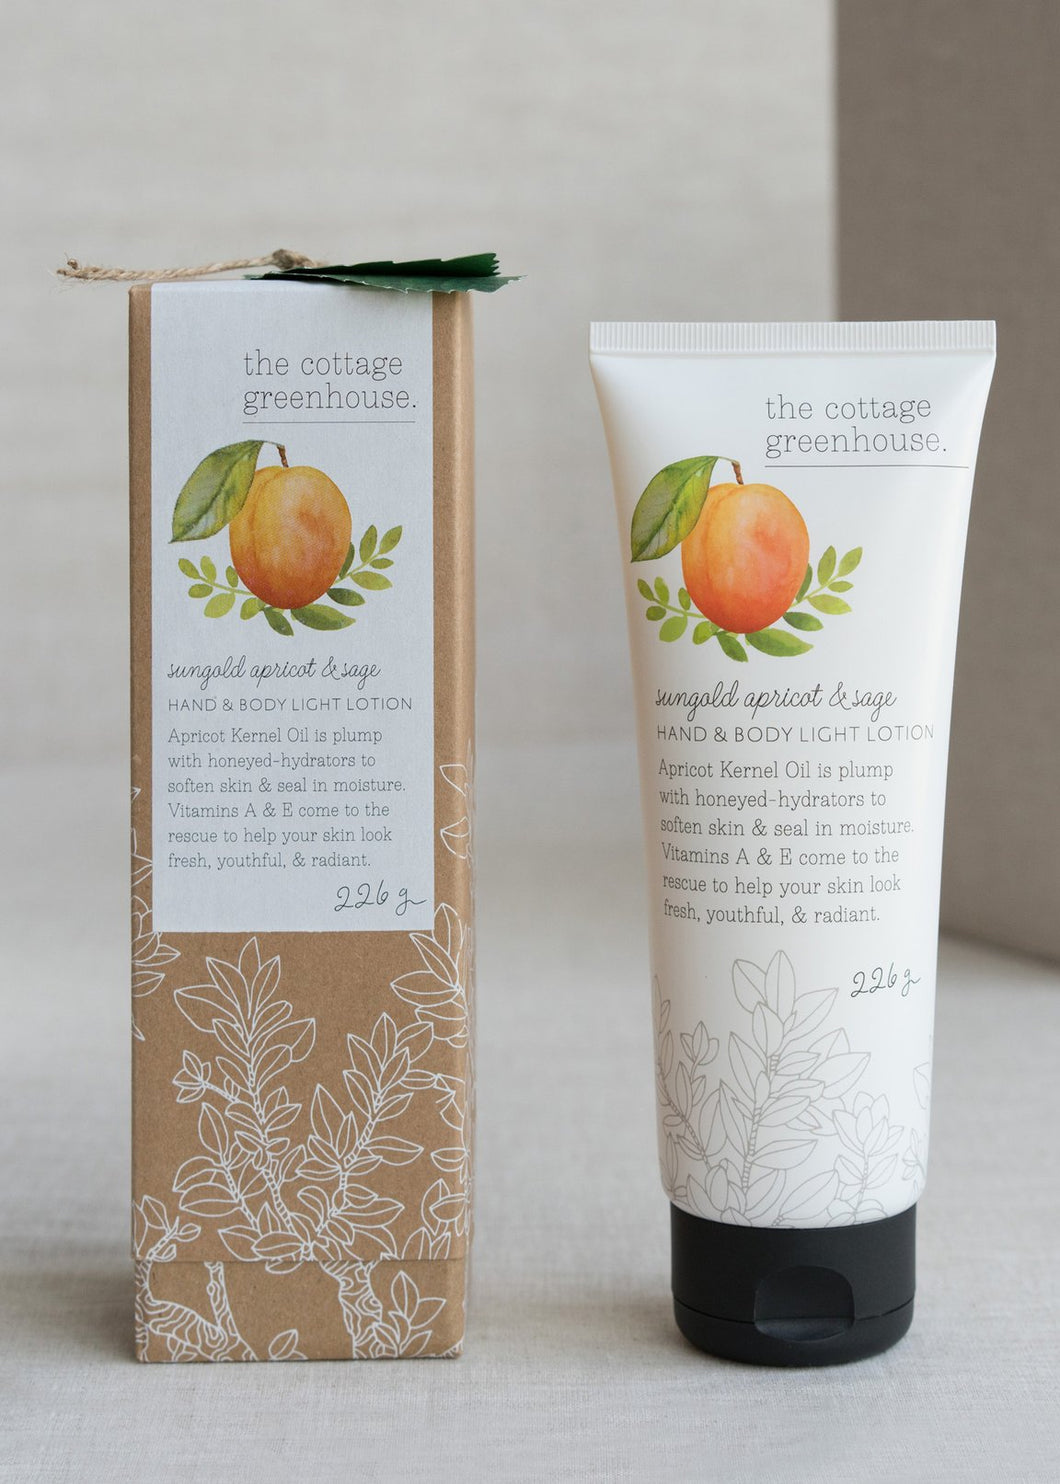 Sungold Apricot & Sage Lotion